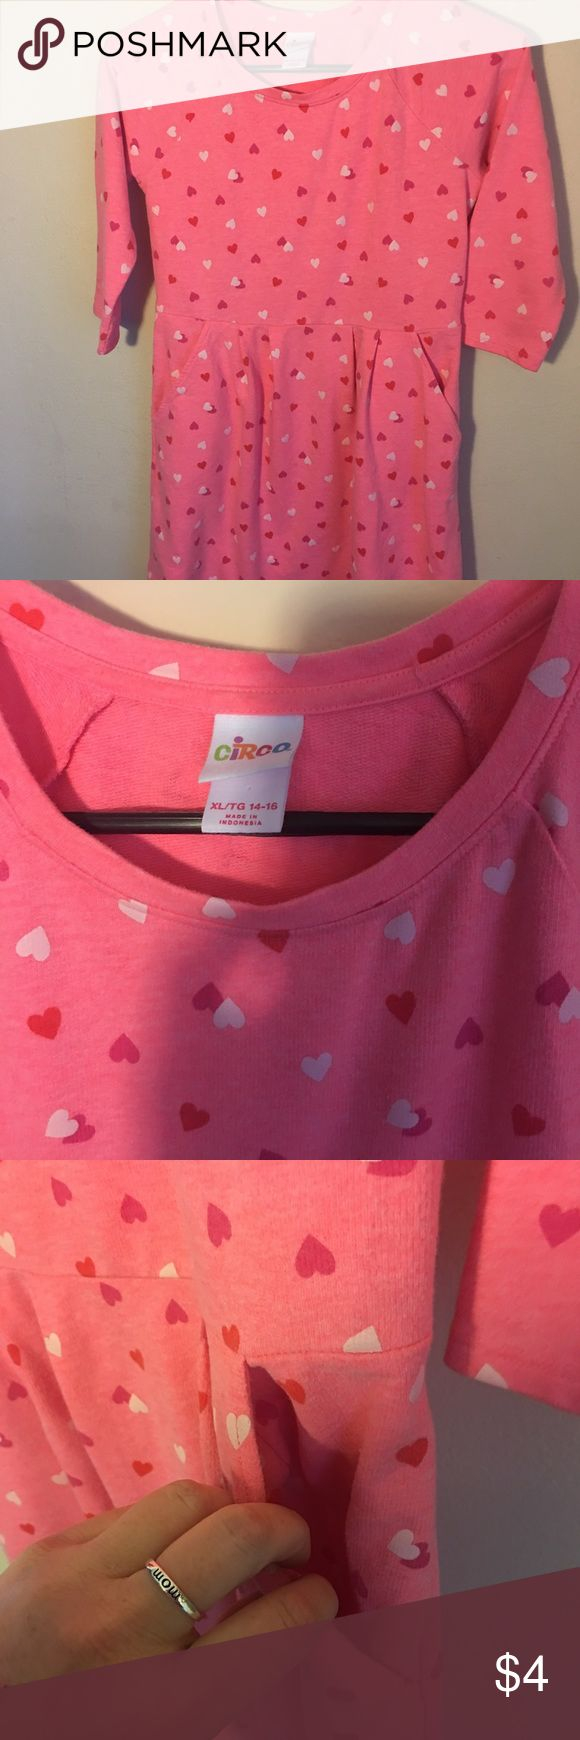 Circo Valentines Dress Size Girls 14/16 Used Dress by Circo great for Valentine's Day.  Super cute Size 14/16 XL Girls Pocket heart dress Circo Dresses Casual